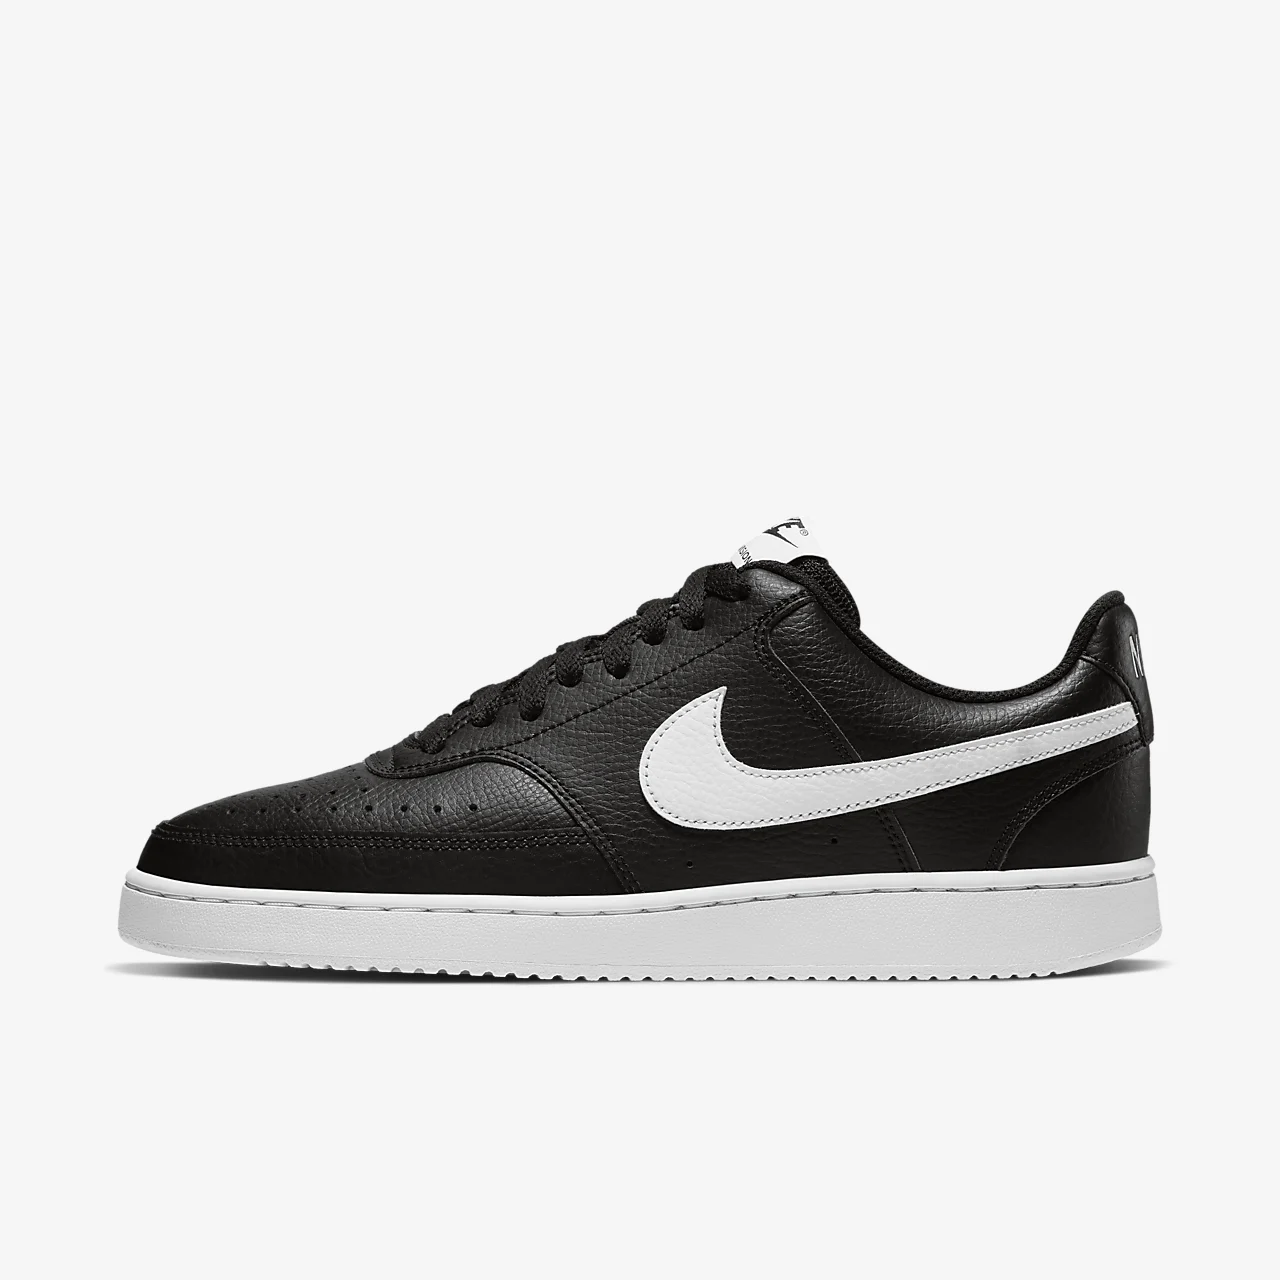 유럽직배송 나이키 NIKE Nike Court Vision Low Men's Shoe CD5463-001